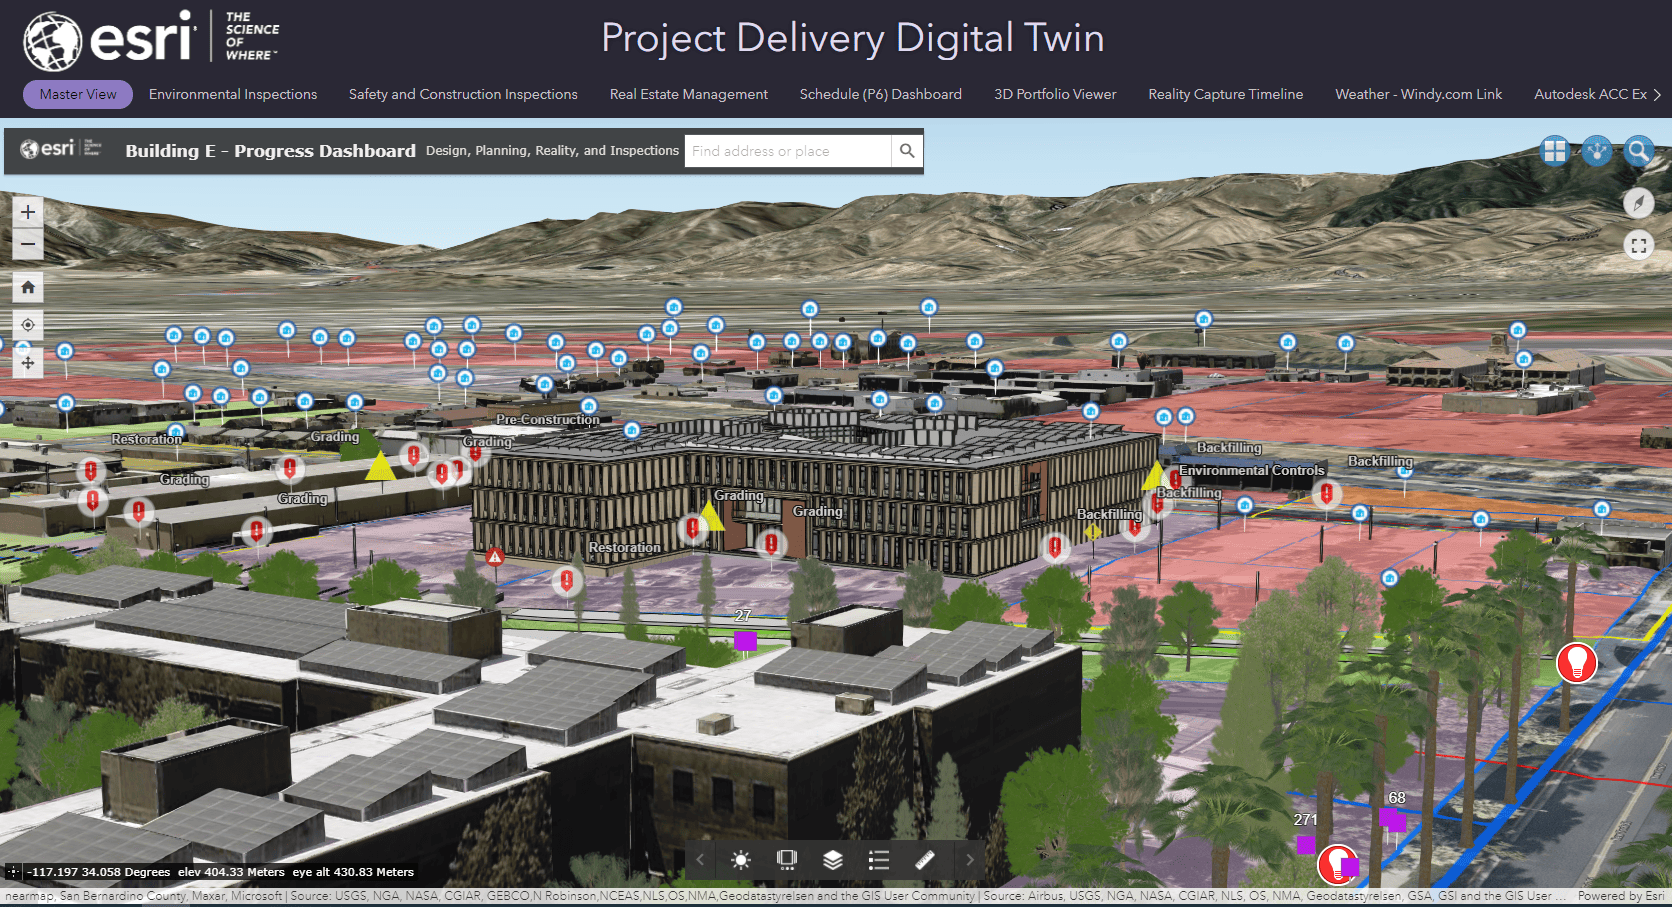 Project Delivery Digital Twin